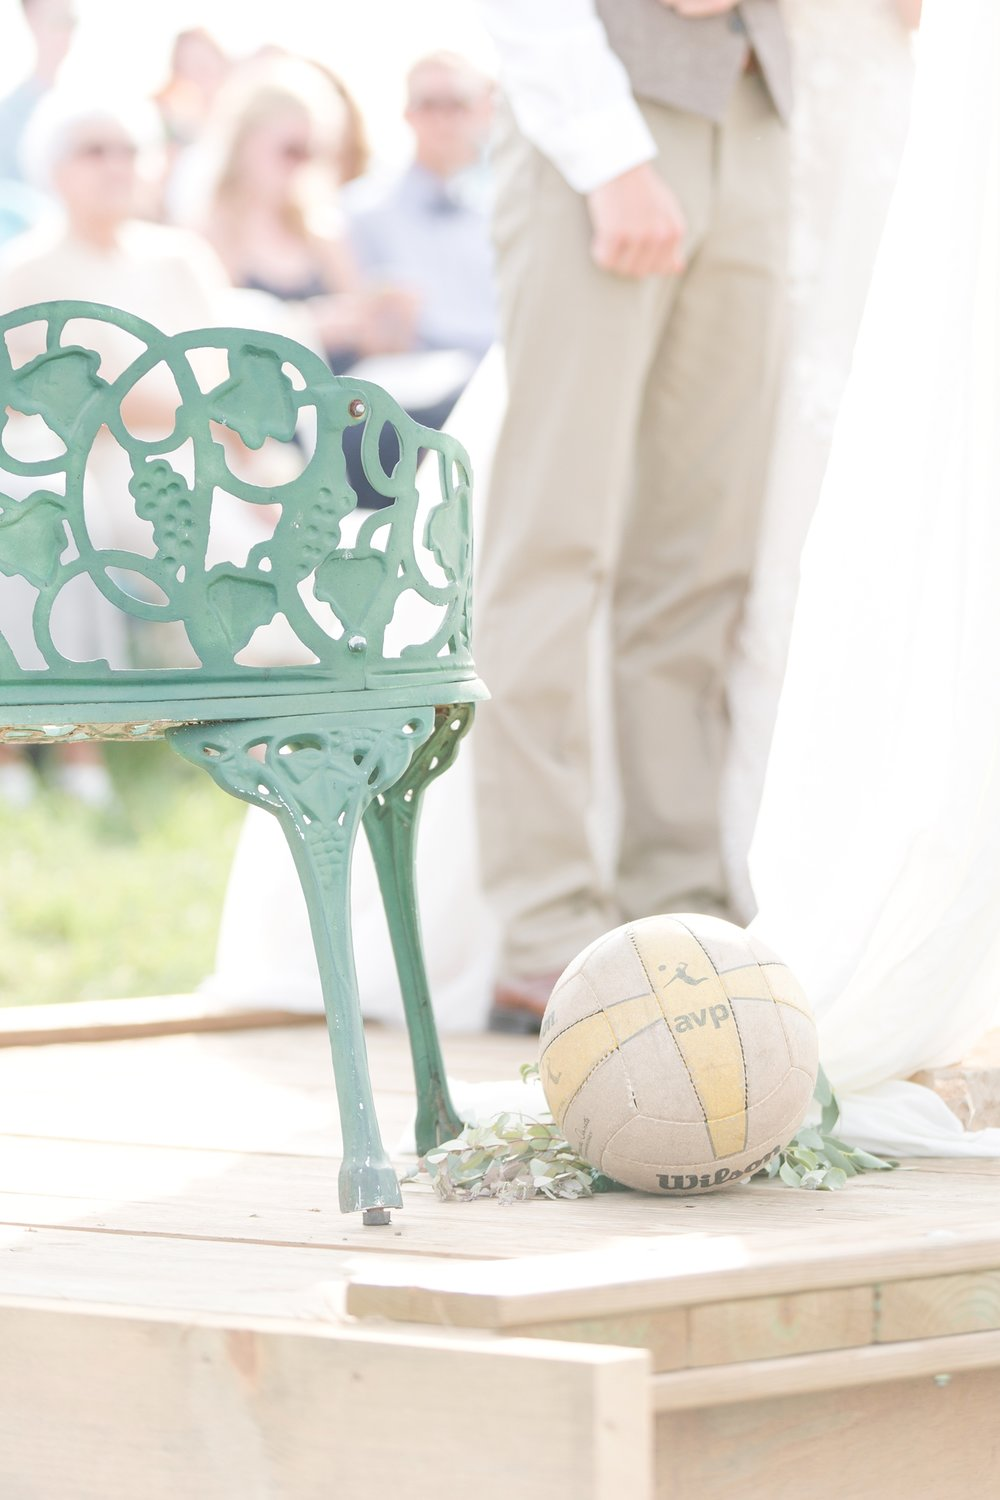 The girls in the Shickel family each played volleyball growing up so this volleyball was incorporated into both Emily and her sister Kate's wedding. So cool!